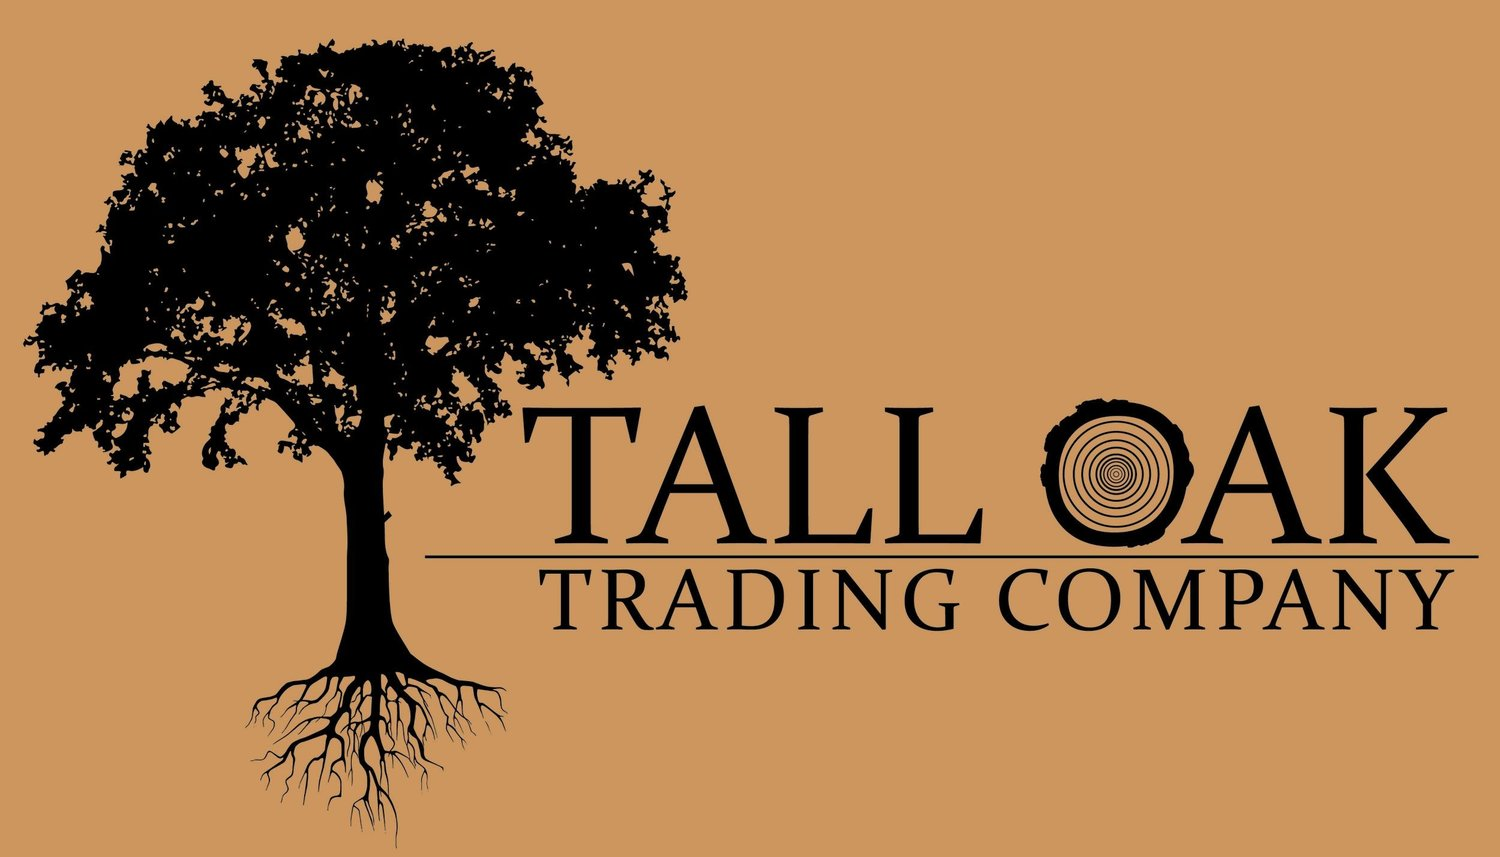 Tall Oak Trading Company